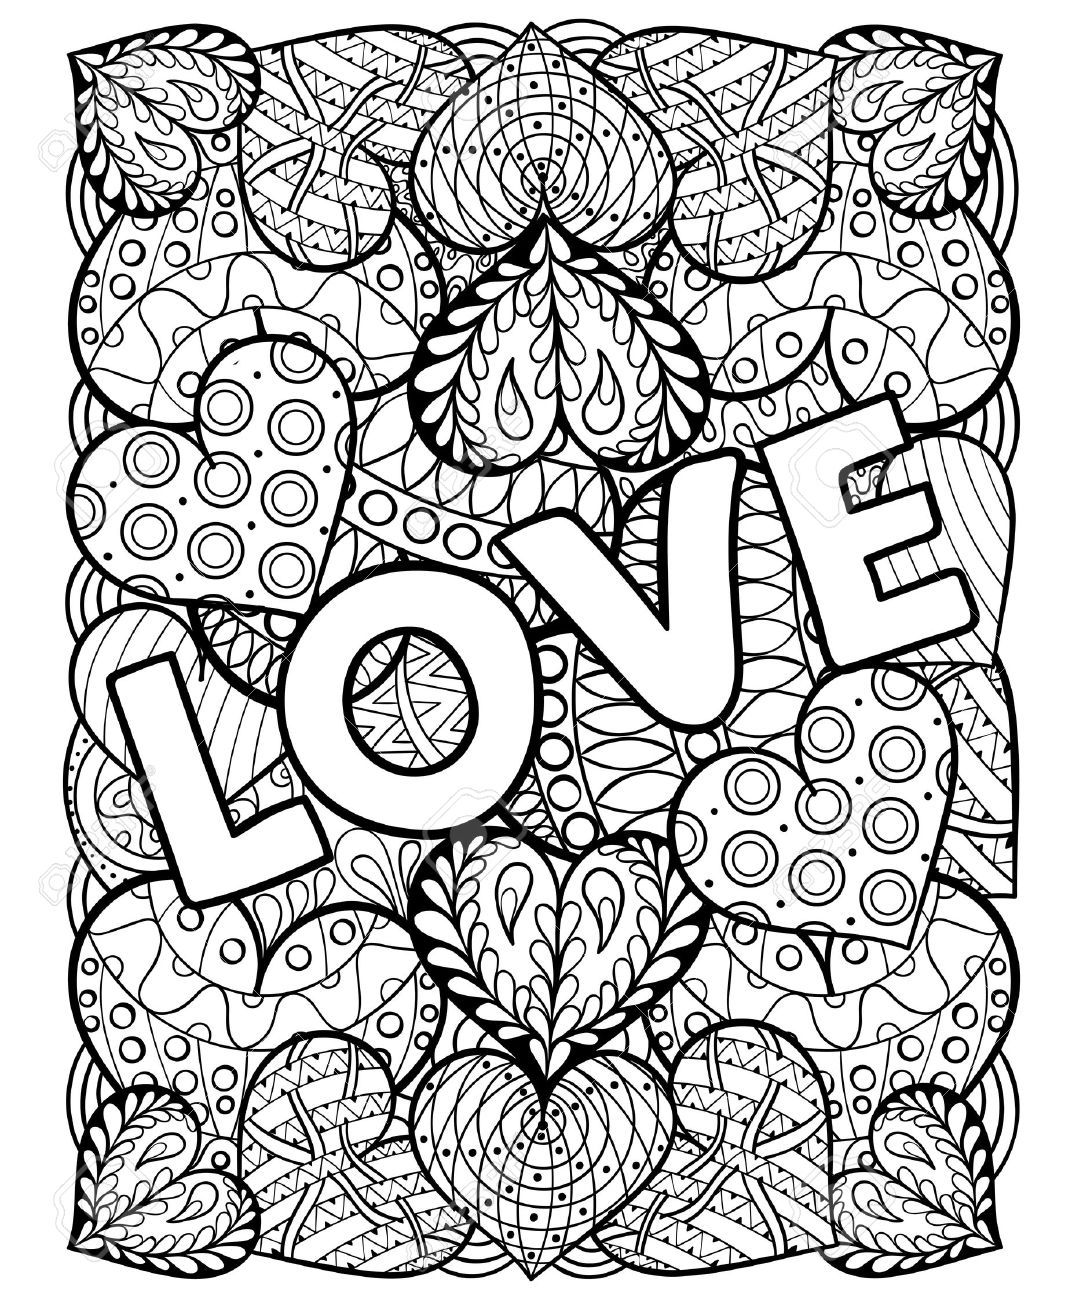 full size coloring pages adults - photo#50